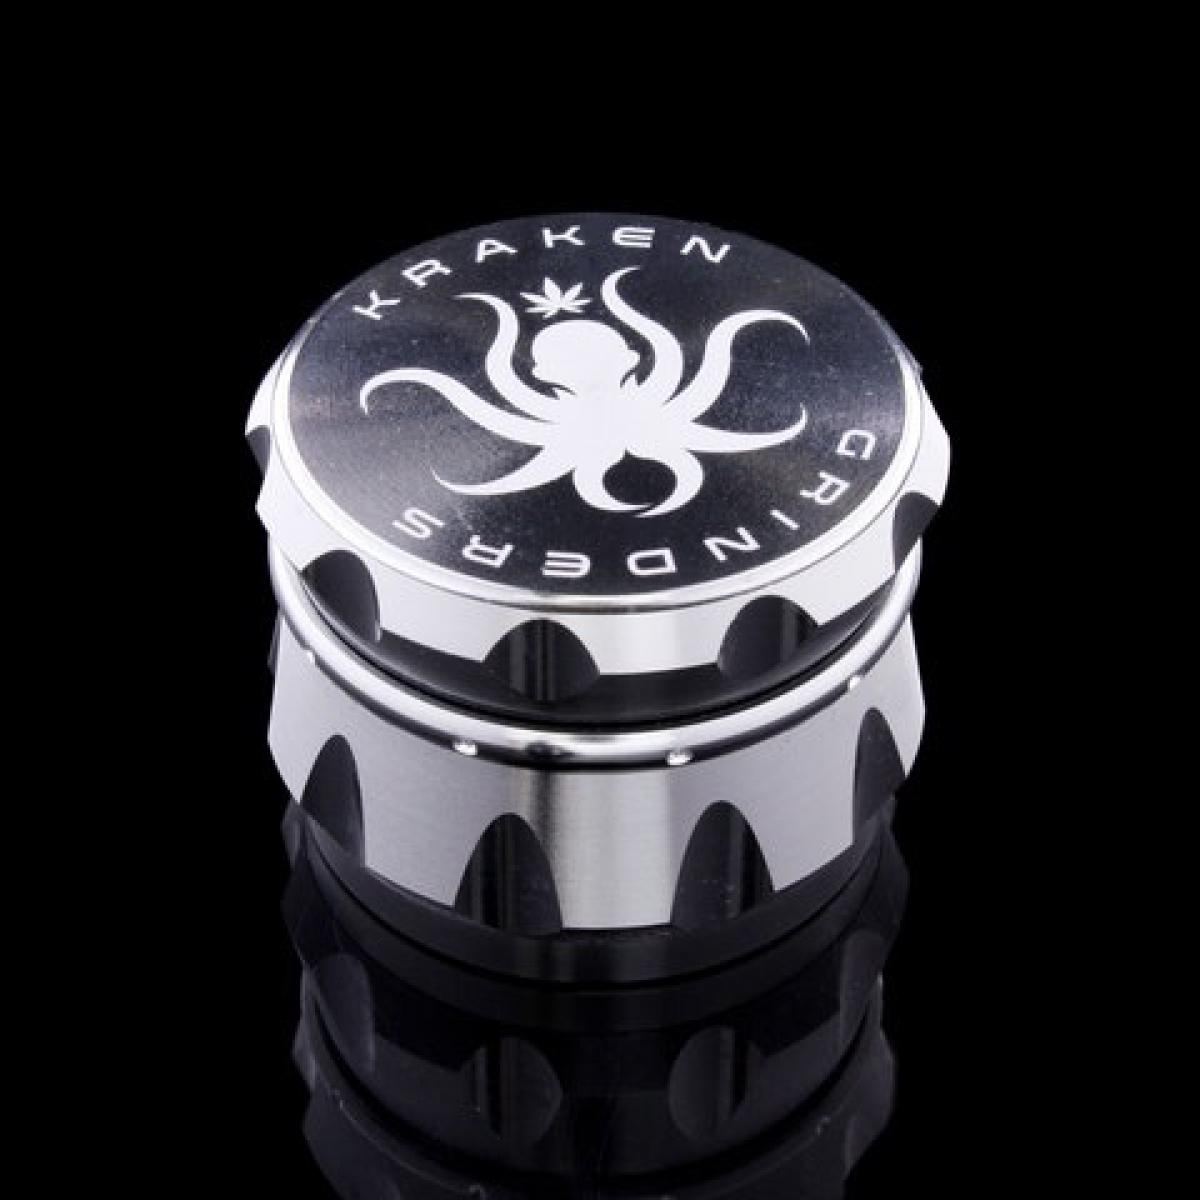 Kraken 2.2 inch 4-part Diamond Ridge Grinder